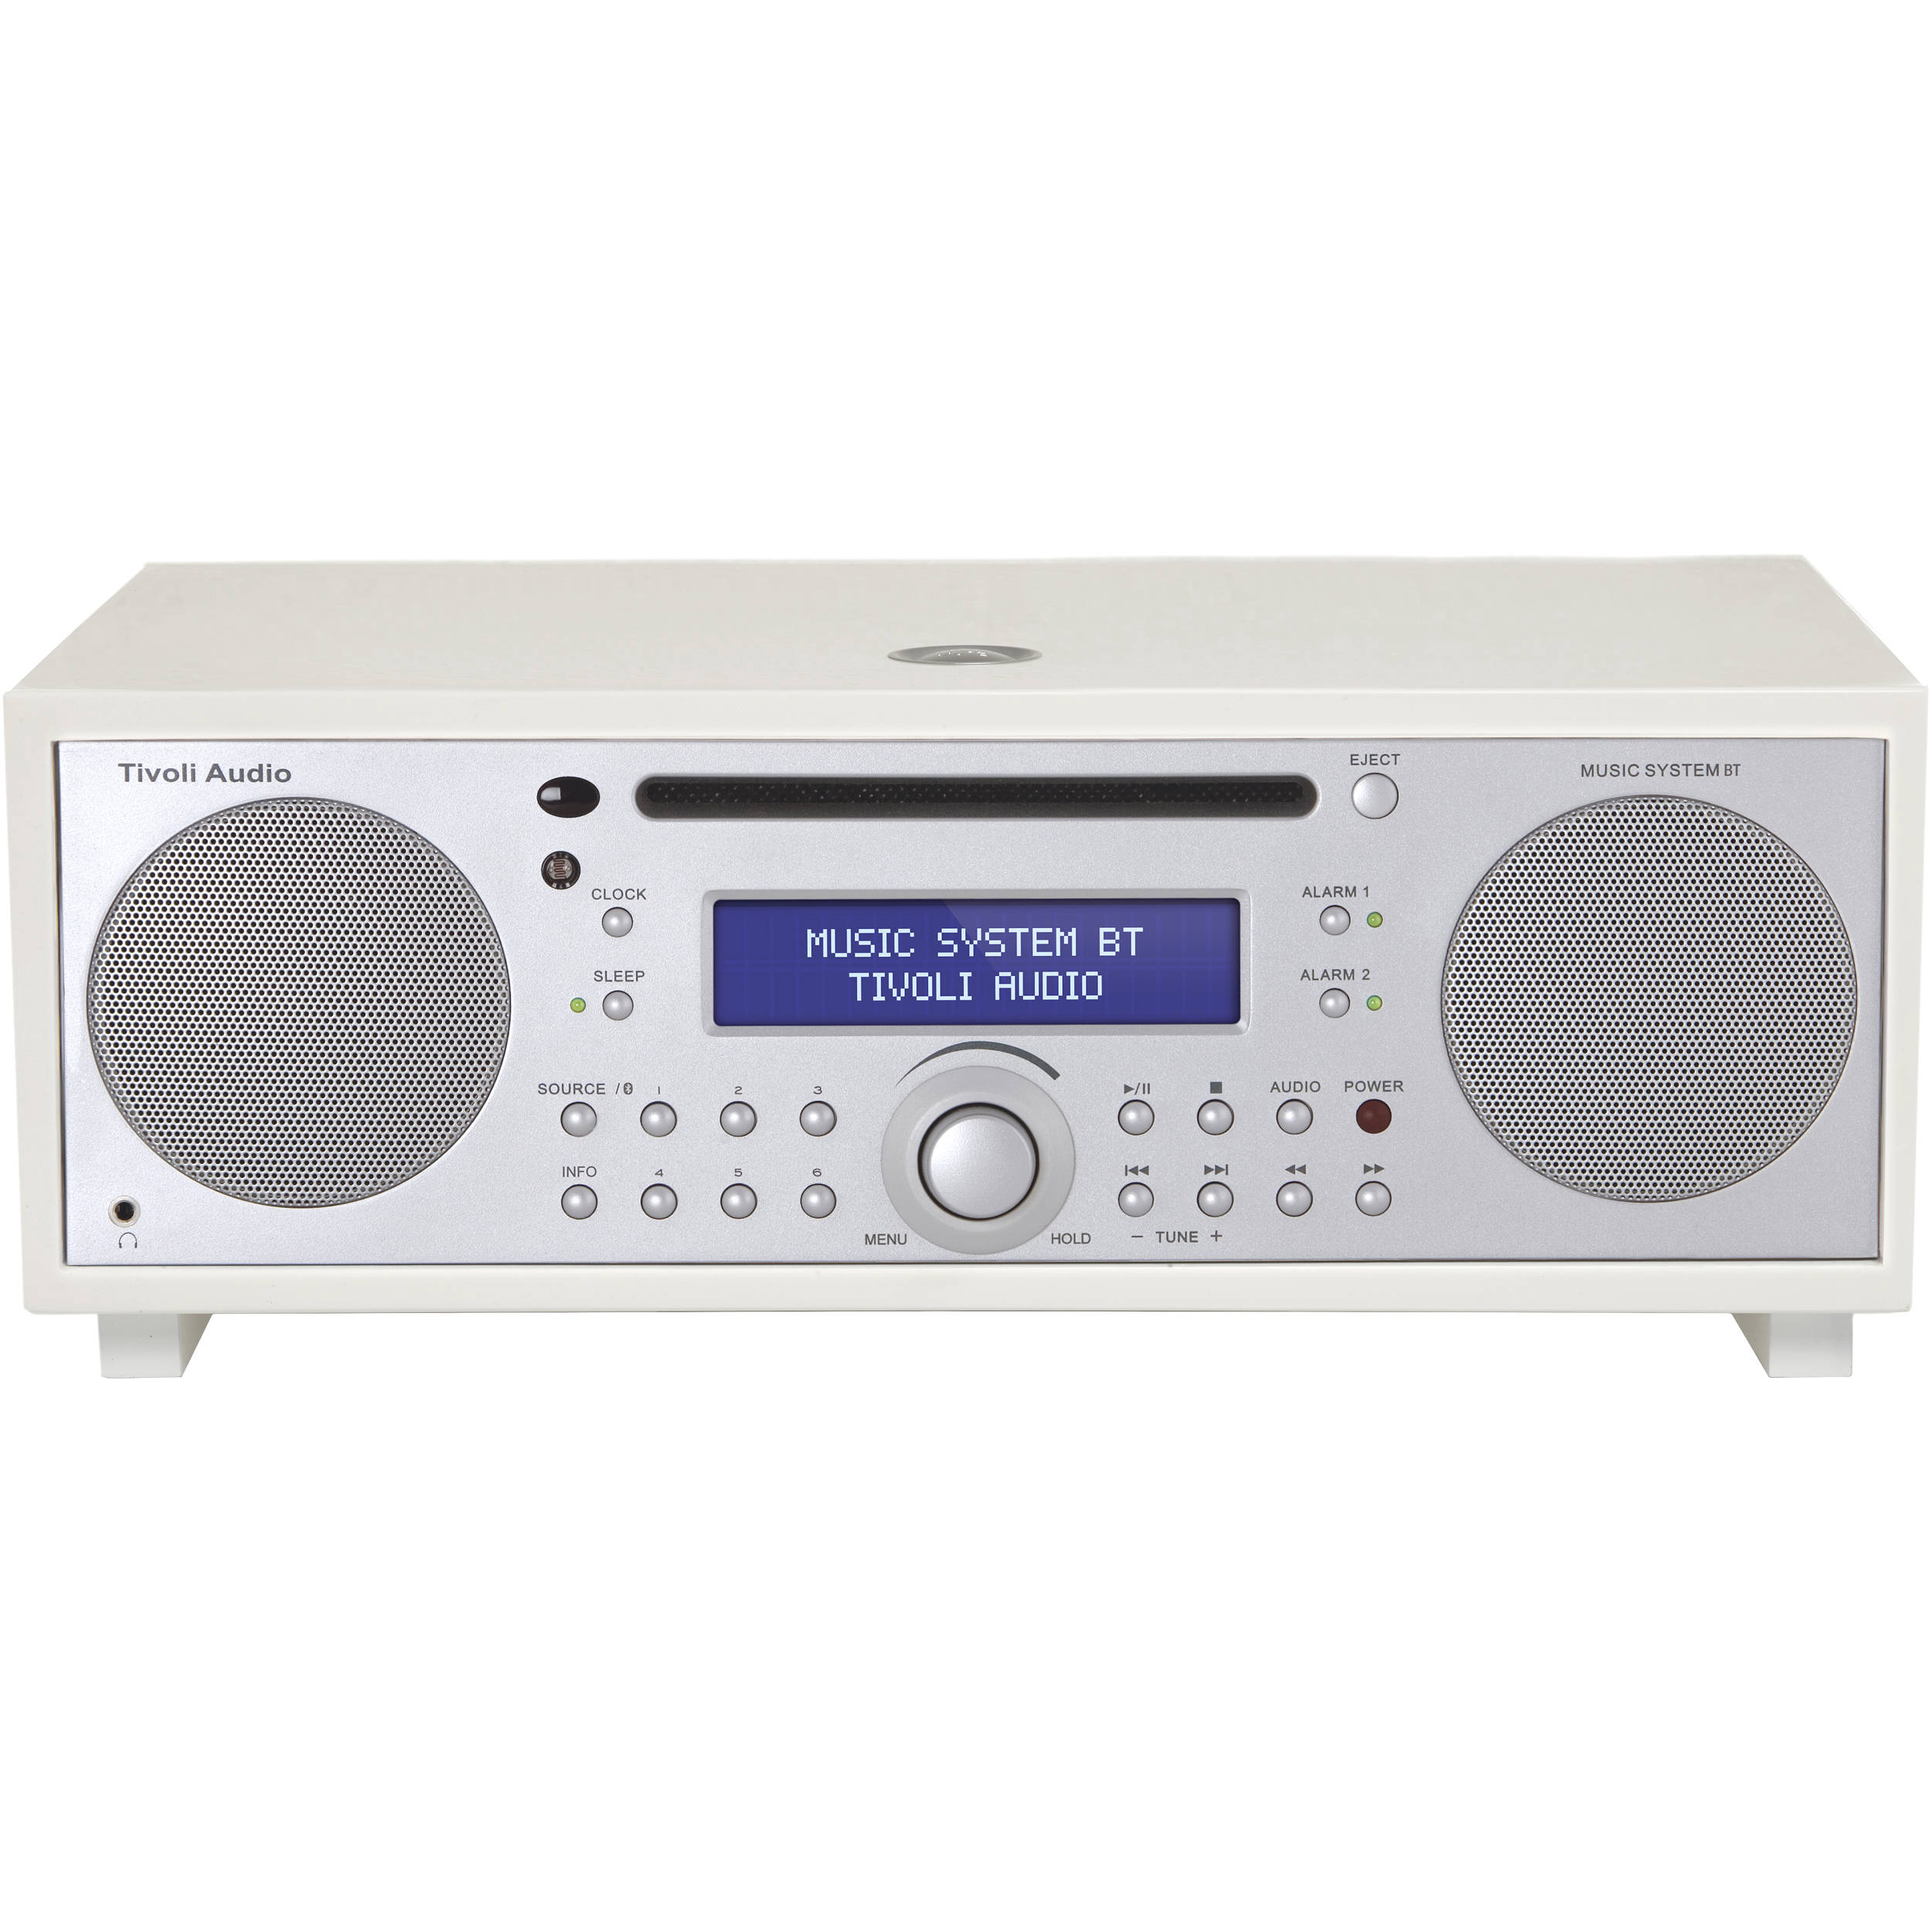 Tivoli Music System BT (Piano White/Silver) MSYBTWHT B&H Photo